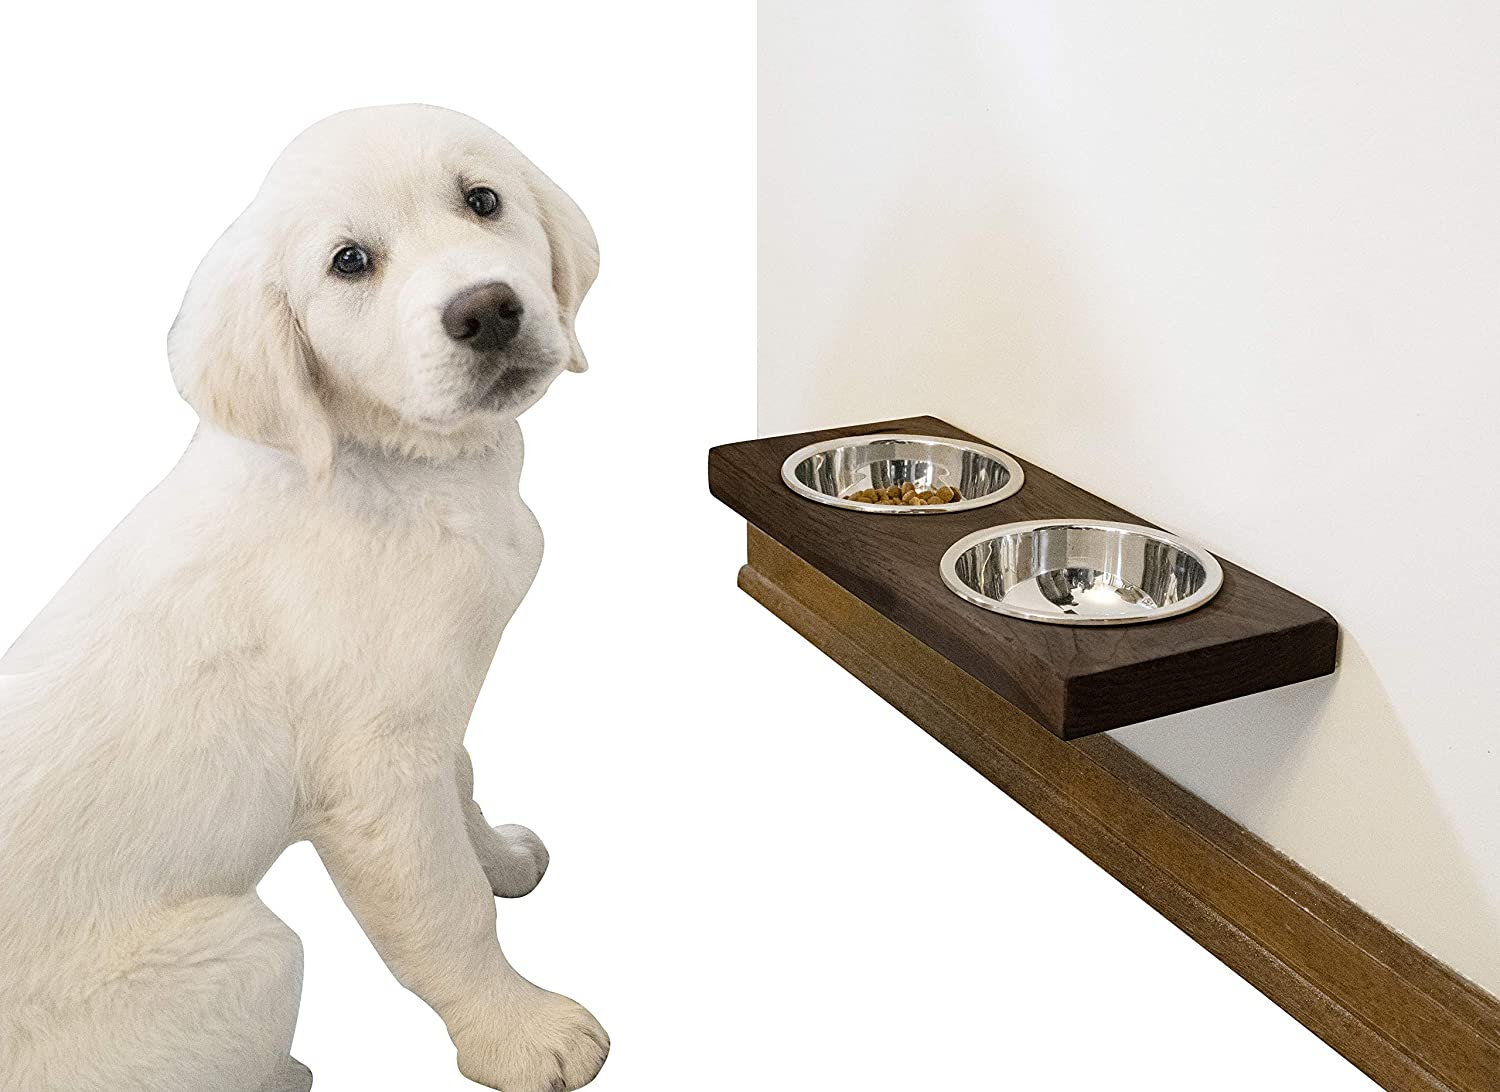 """Imperative Décor Rustic Wood Floating Raised Pet Bowls for Dog and Cats Elevated Food and Water Bowls (17"""" x 7.5"""")"""